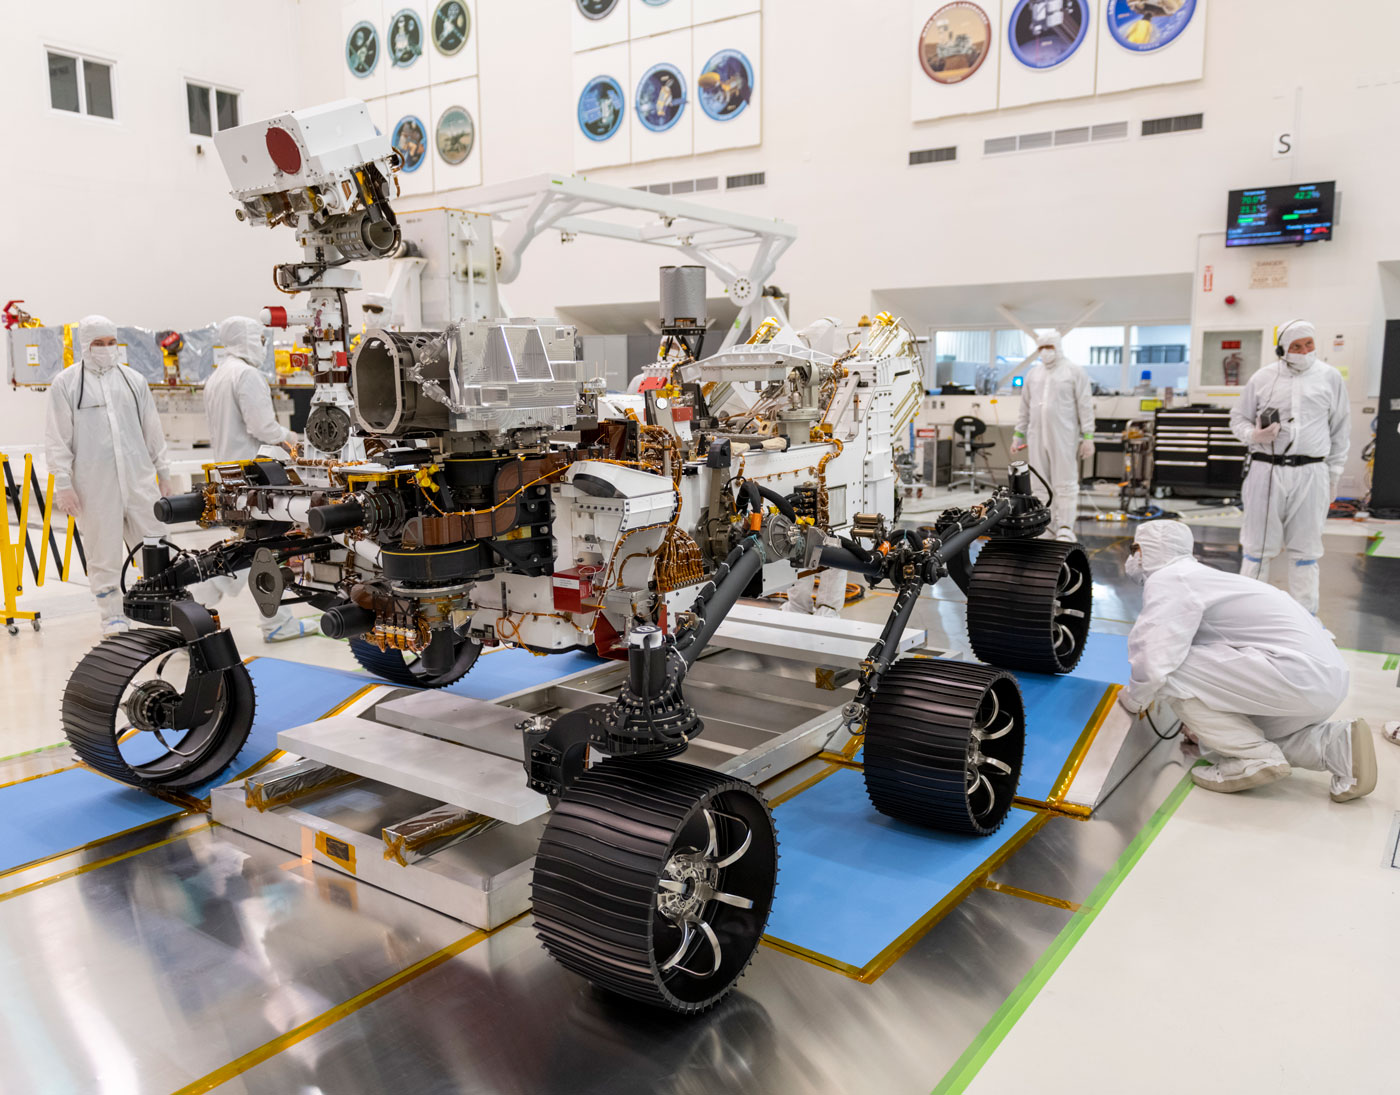 a large robotic rover with six wheels in its skeletal form being developed in a white sterile lab. the rover is about the size of a two-car door. people in white hazmat suits work on the rover